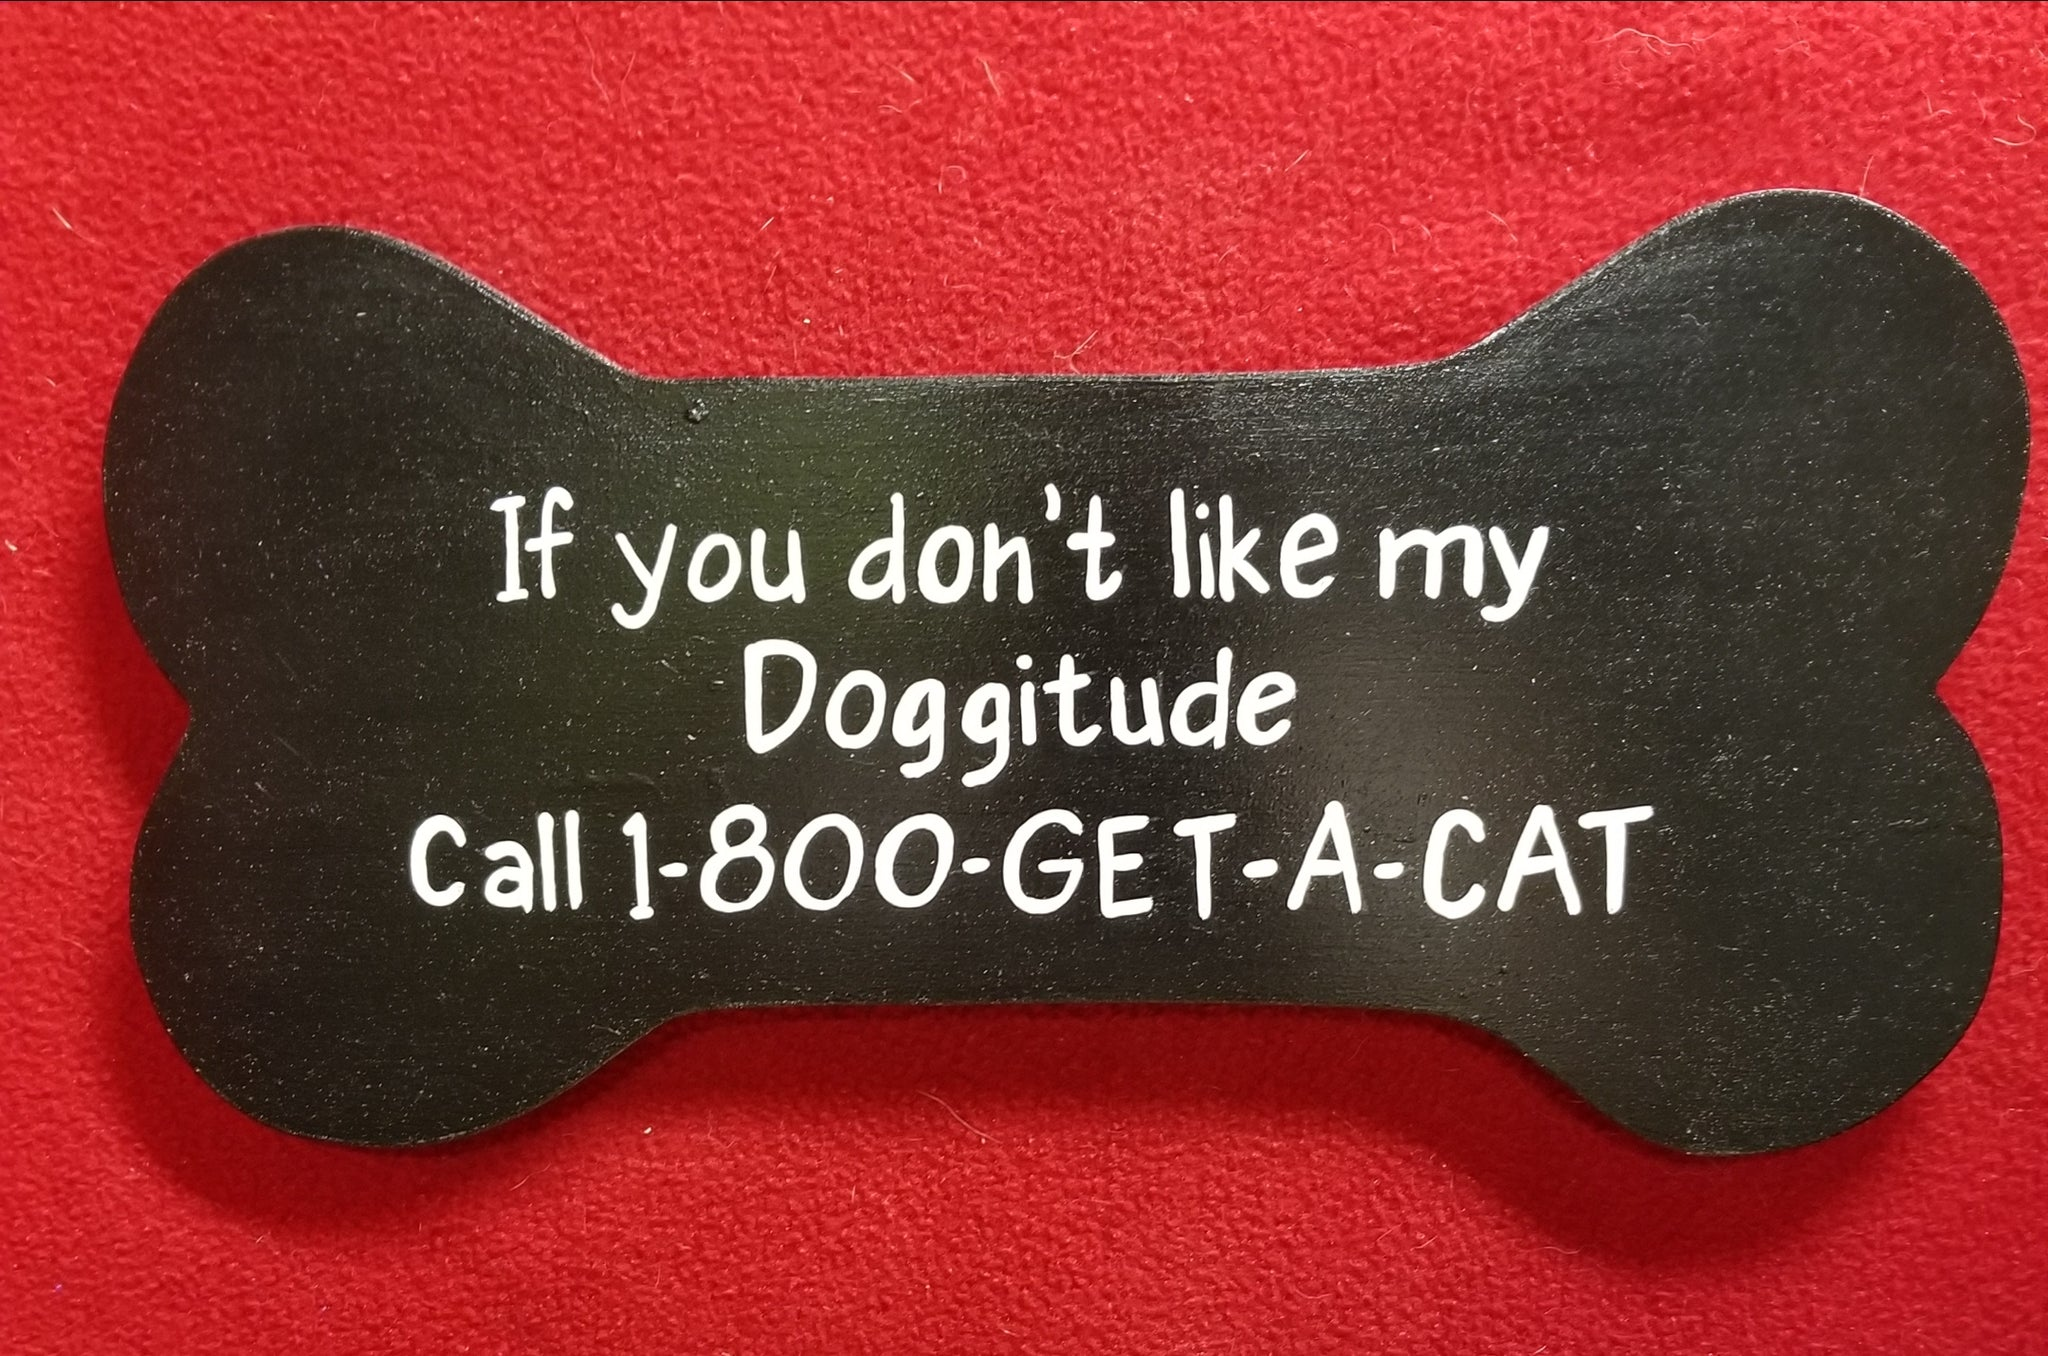 If you don't like my doggitude Call 1-800-GET-A-CAT